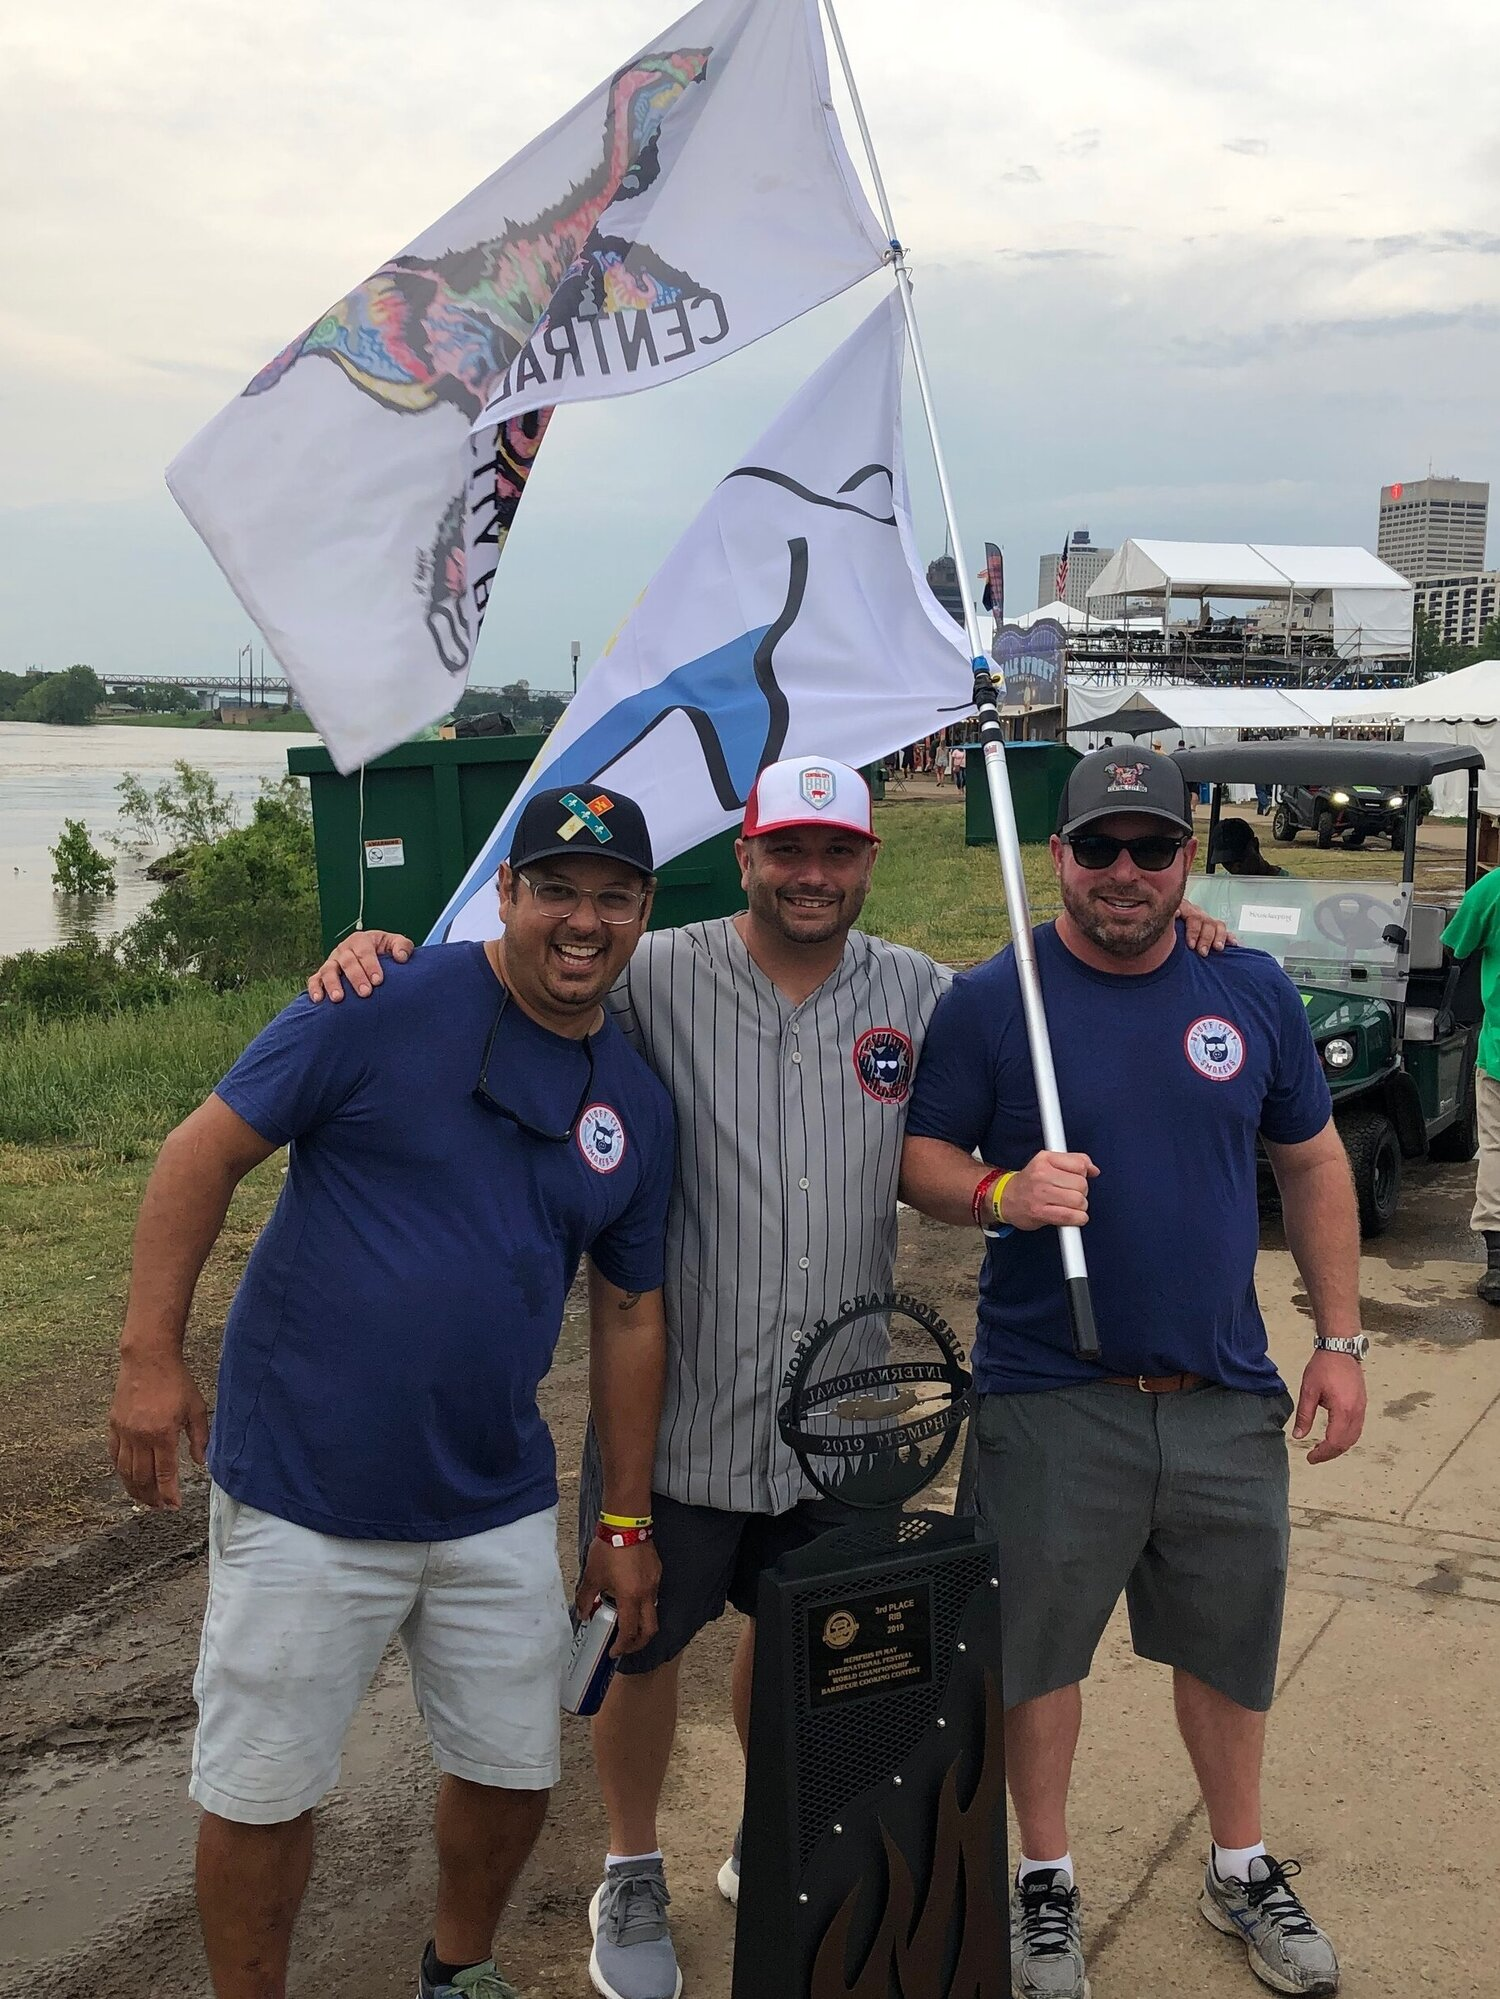 Winner Pitmaster James Cruse for Top 3 in Ribs at the BBQ World Championship in 2019 -Memphis in May with Aaron Burgau & Marc Bonifacic.